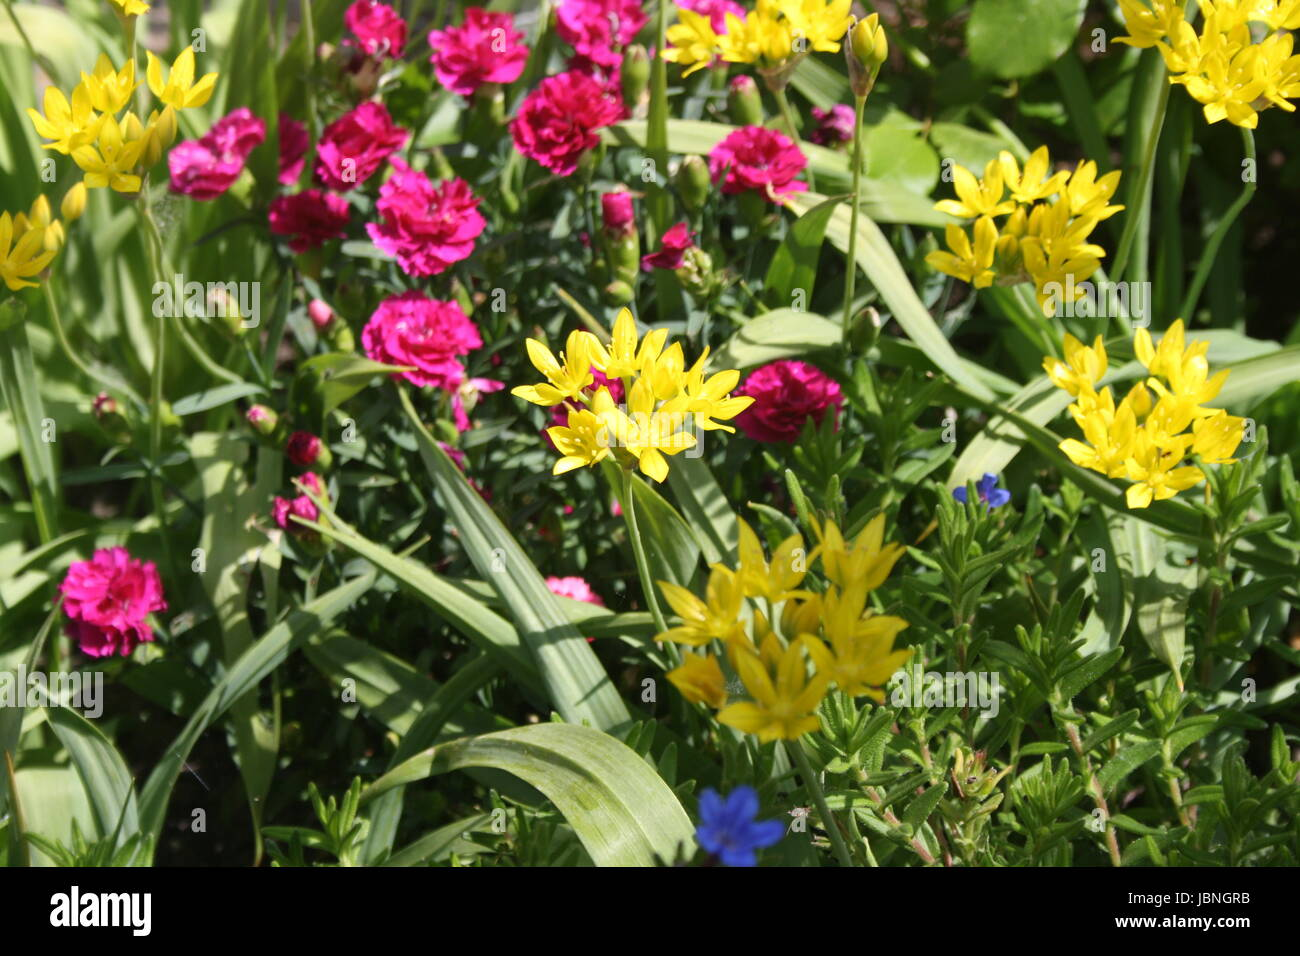 colourful summer flowers - Stock Image